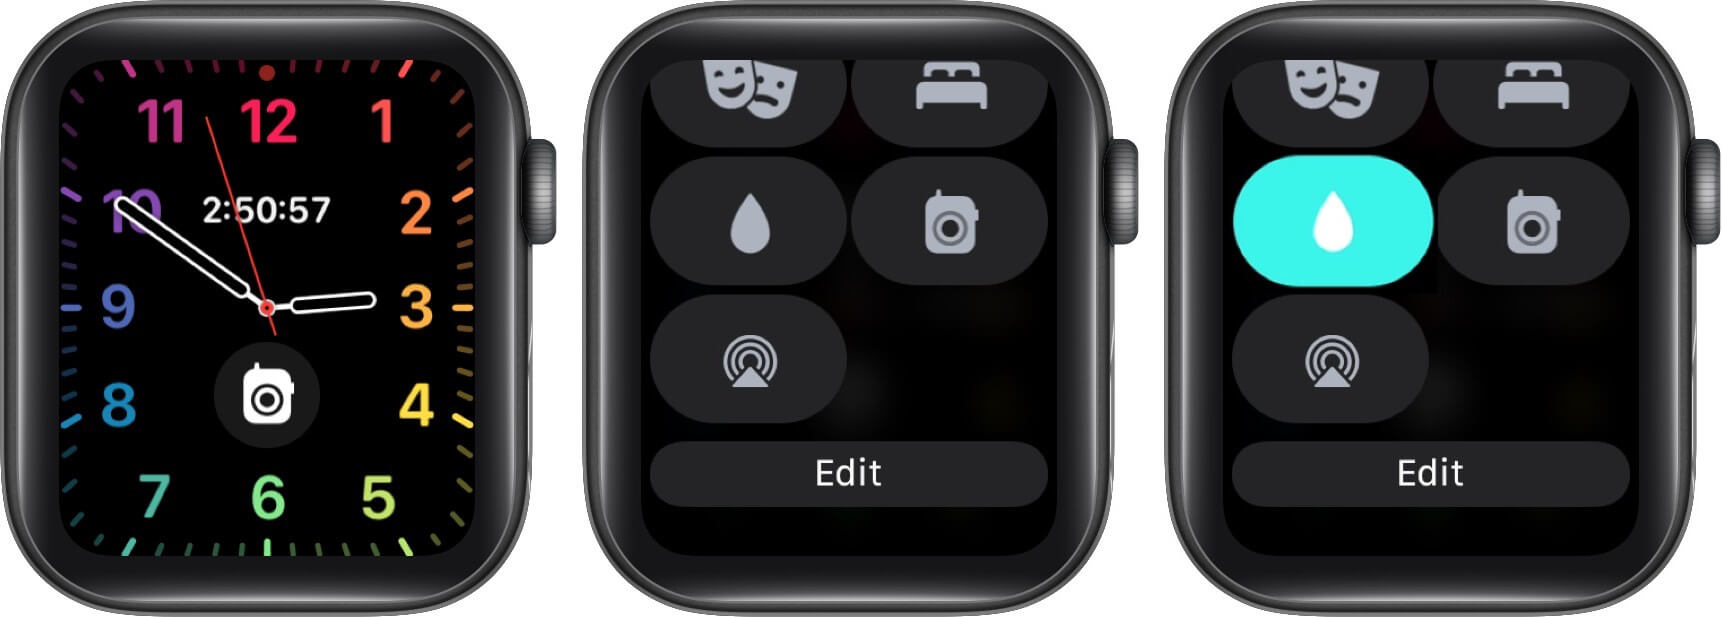 turn on water lock on apple watch